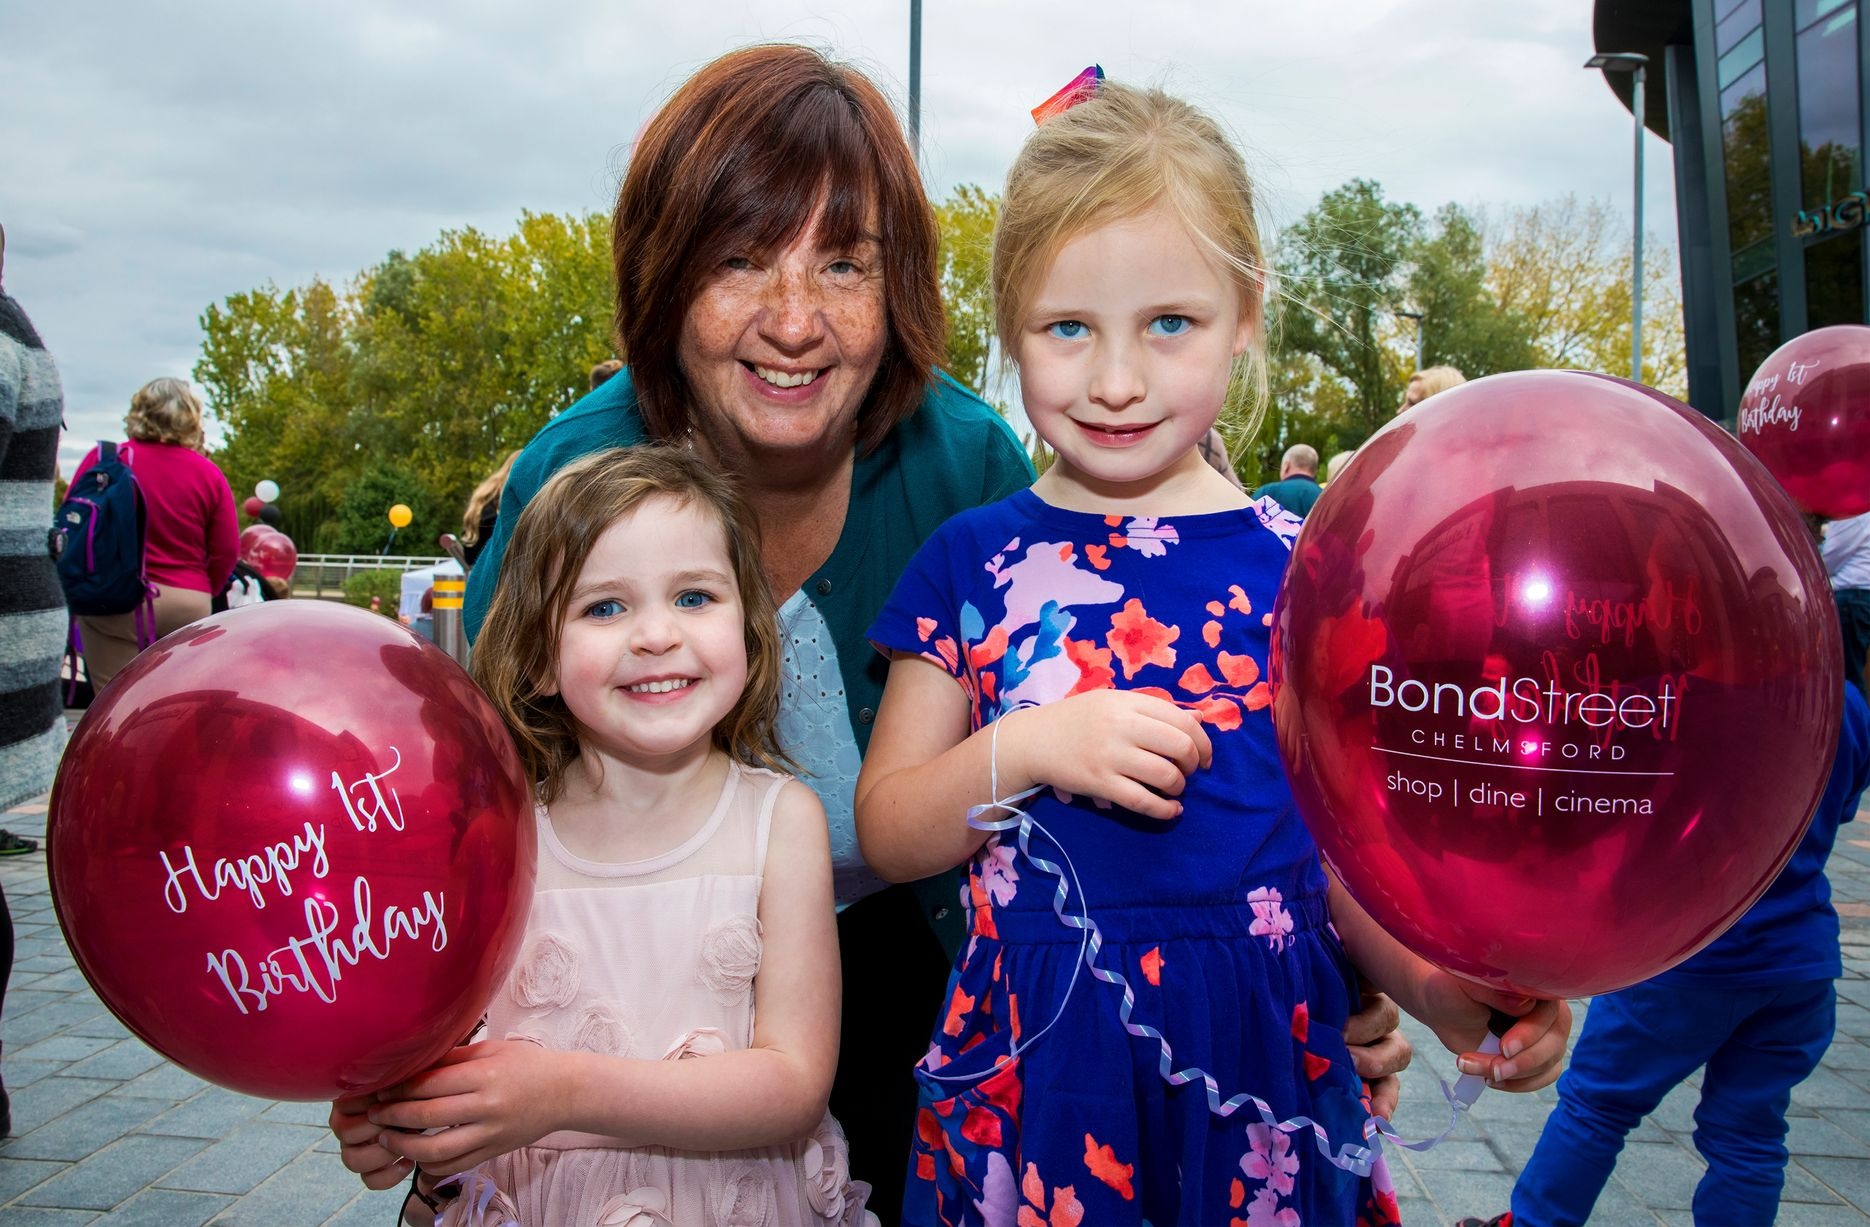 Bond-Street-first-birthday-Chelmsford-kids-balloons.jpg